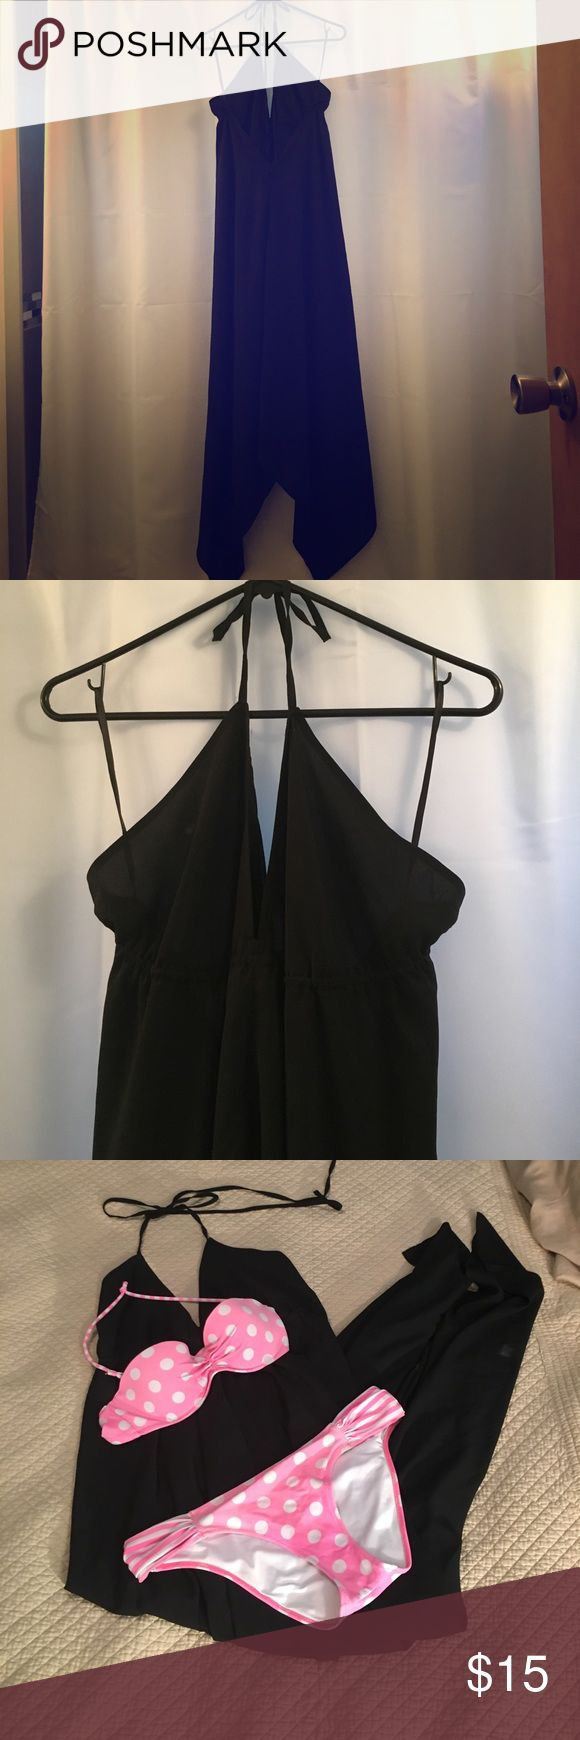 Black,Asymmetrical, Dress This Dress is the perfect summer slip on. Looks so good on. It features a deep v-neck with a halter style tie. It has a v shaped open back, it's lightweight and comfortable. Perfect for throwing on over a swimsuit. In great condition. Old Navy Dresses Maxi